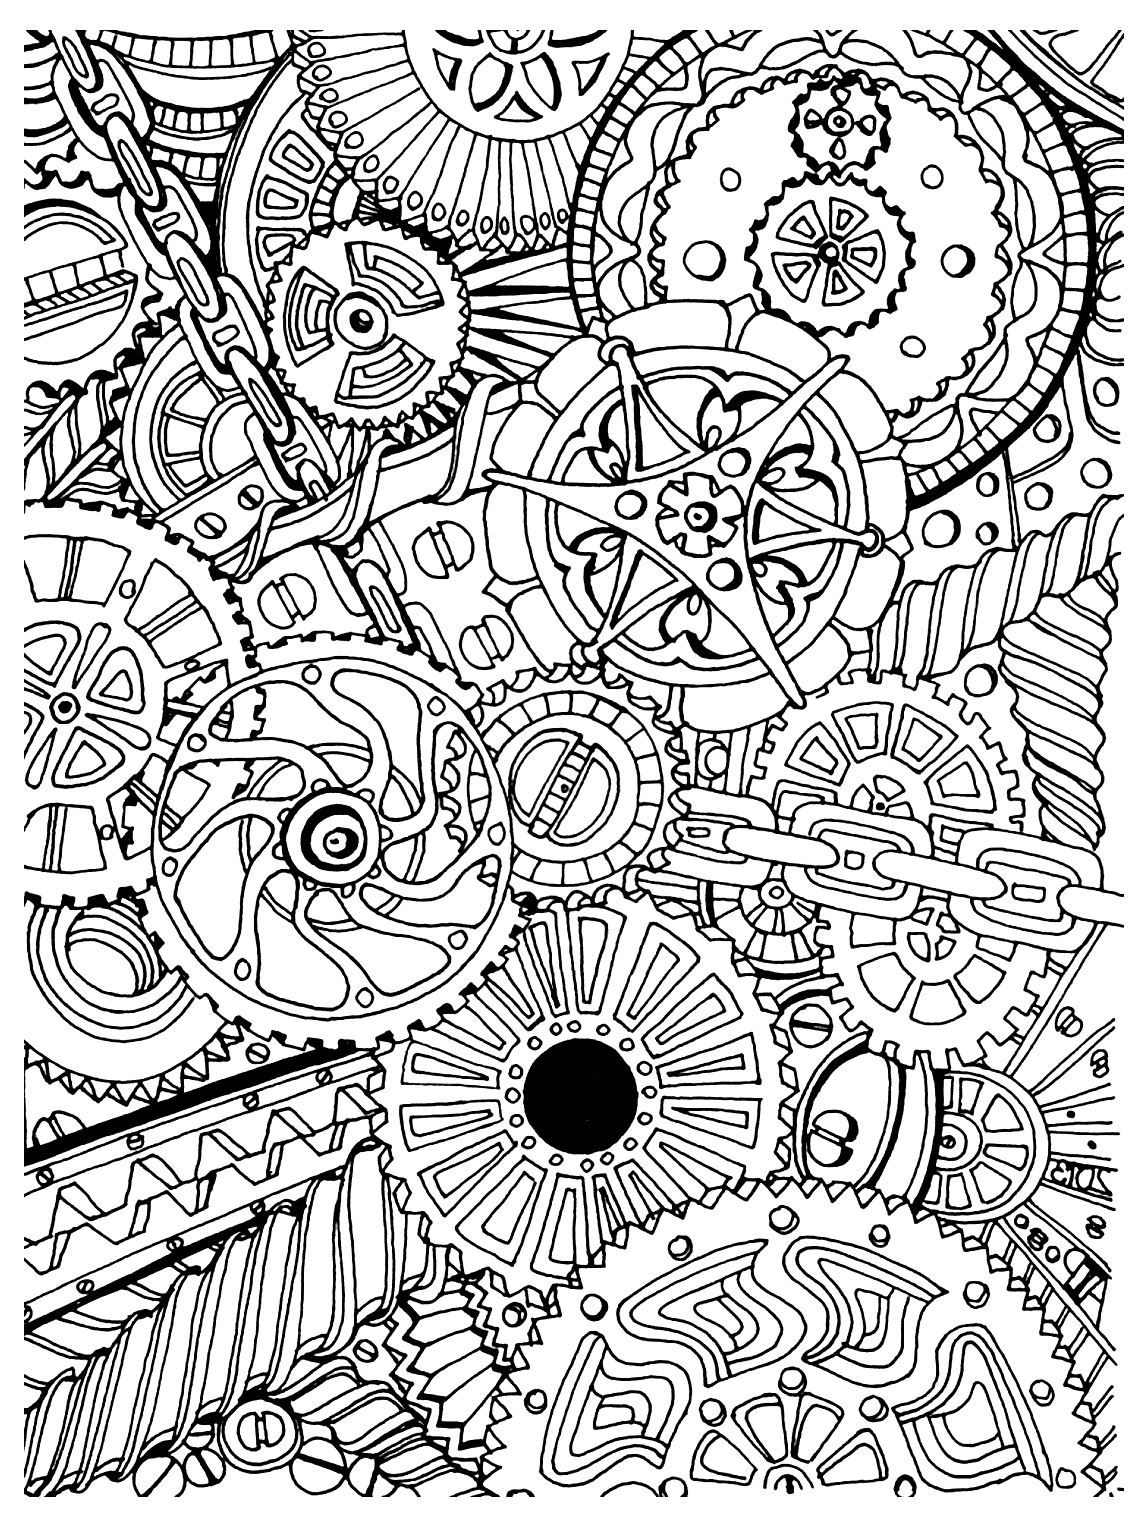 To Print This Free Coloring Page «coloring Adult Zen Anti Stress